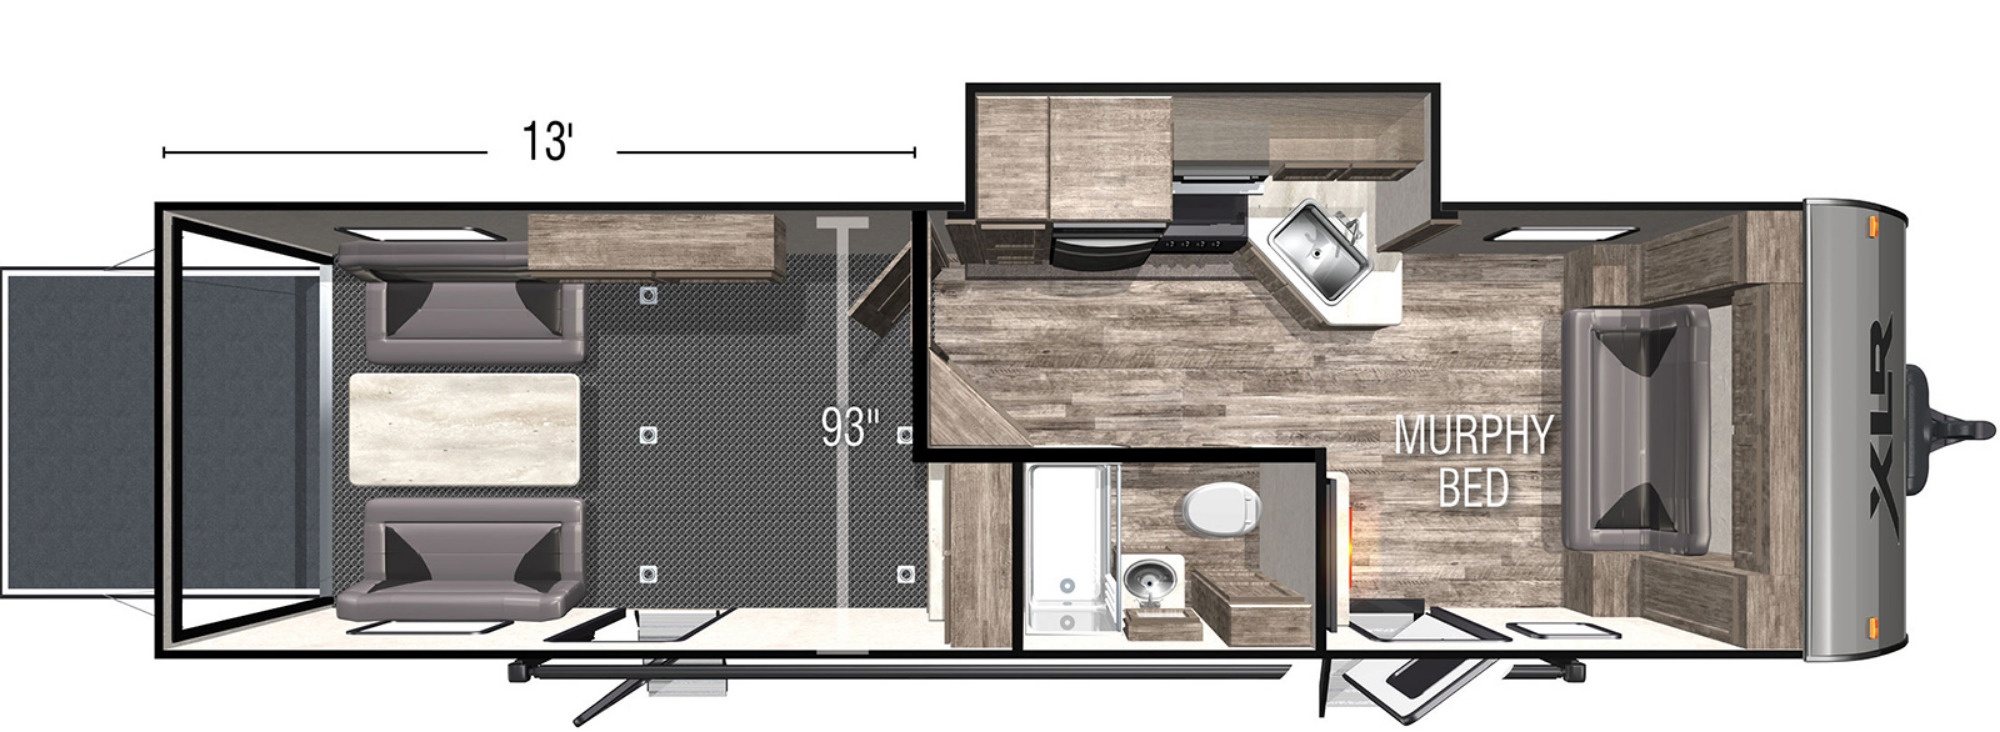 View Floor Plan for 2022 FOREST RIVER XLR BOOST 29LRLE